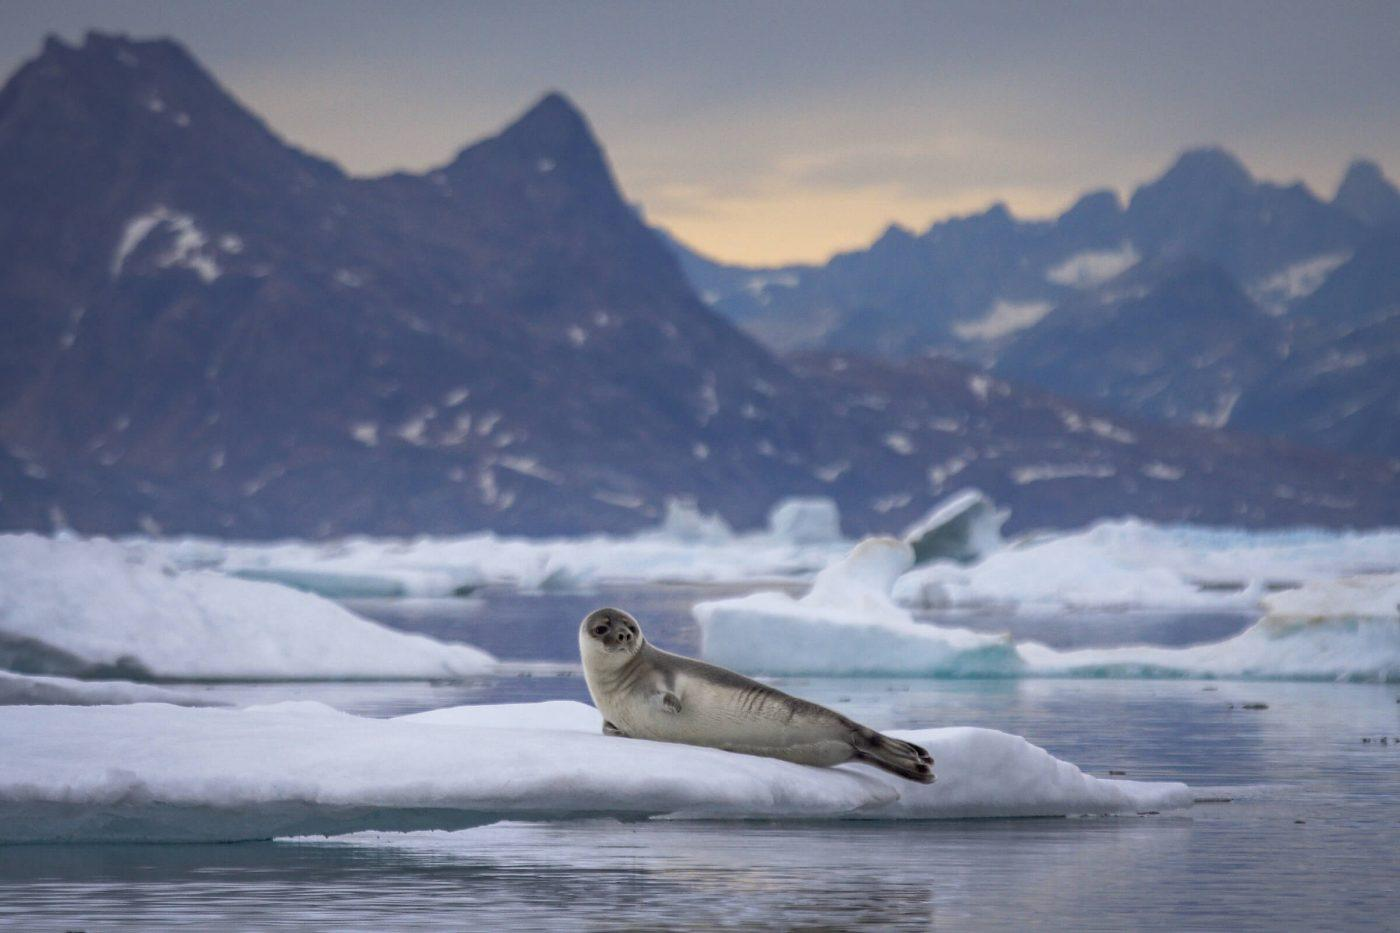 A hooded seal on an ice floe in East Greenland. Photo by Aqqa Rosing Asvid.